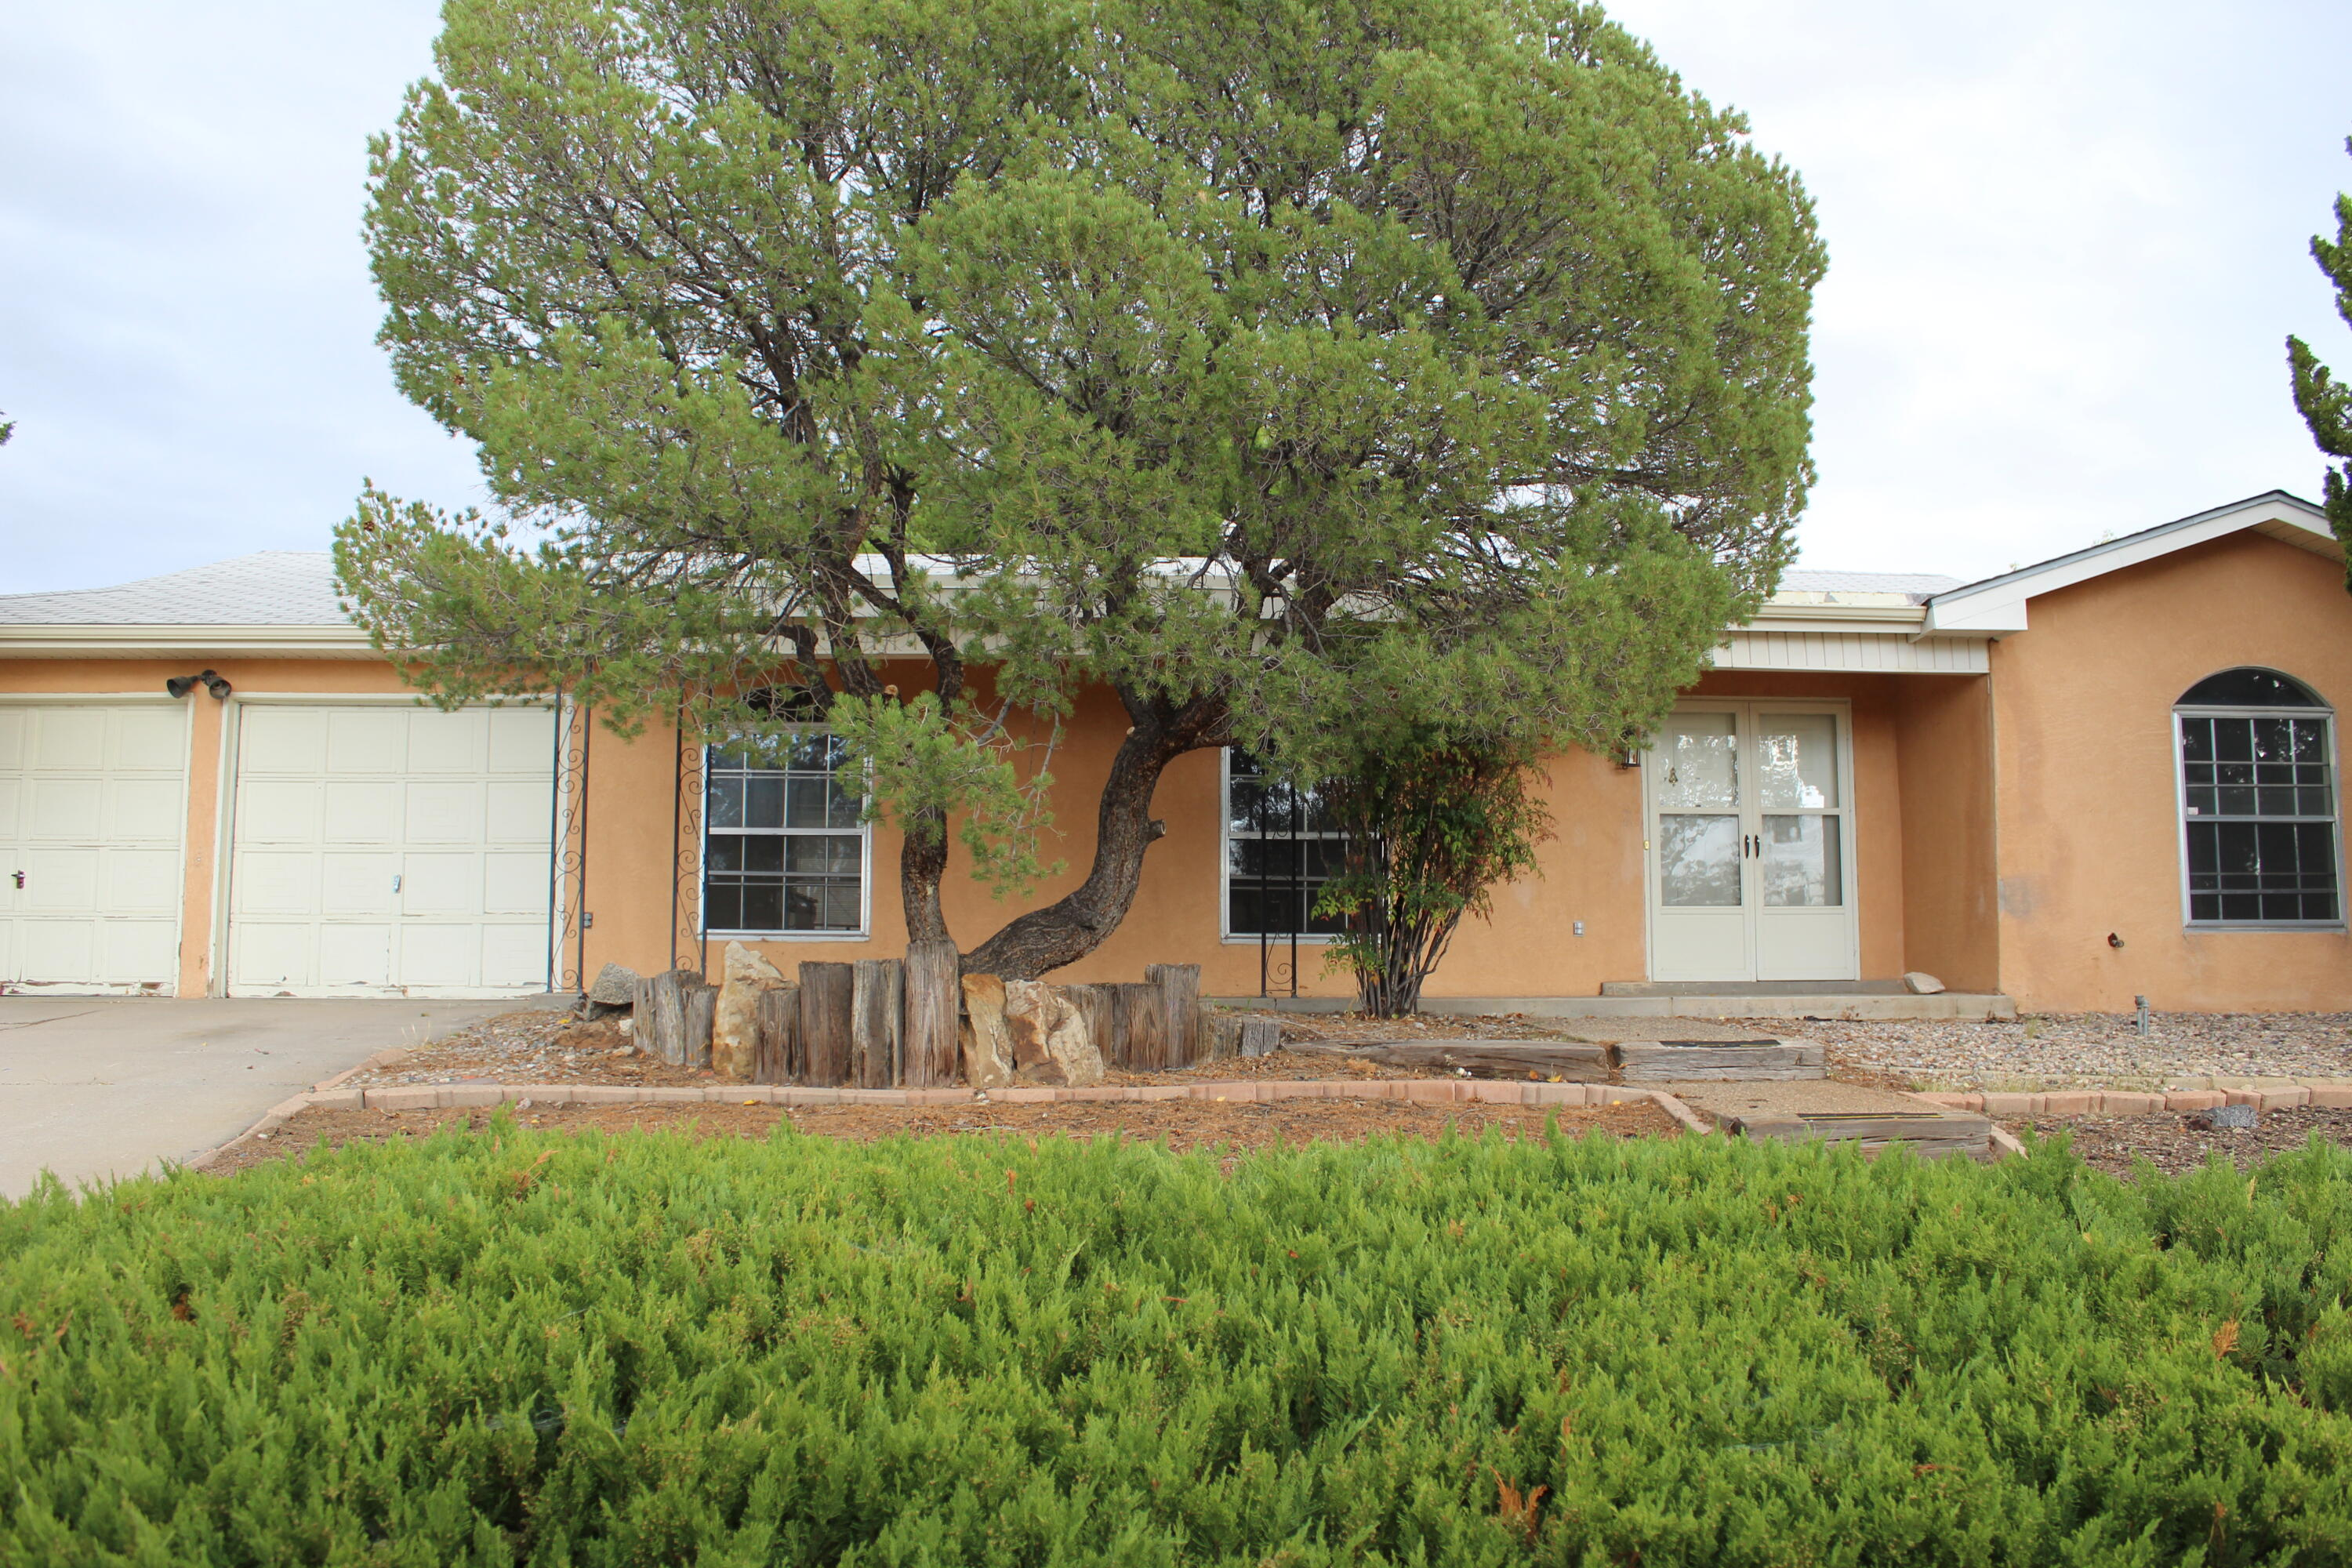 4 Bedroom 2 bathroom home located in Holiday Park. Home has a nice flowing floor plan. 2 car garage and nice sized back yard. Schedule your appointment to view it today. Home is being sold as is.